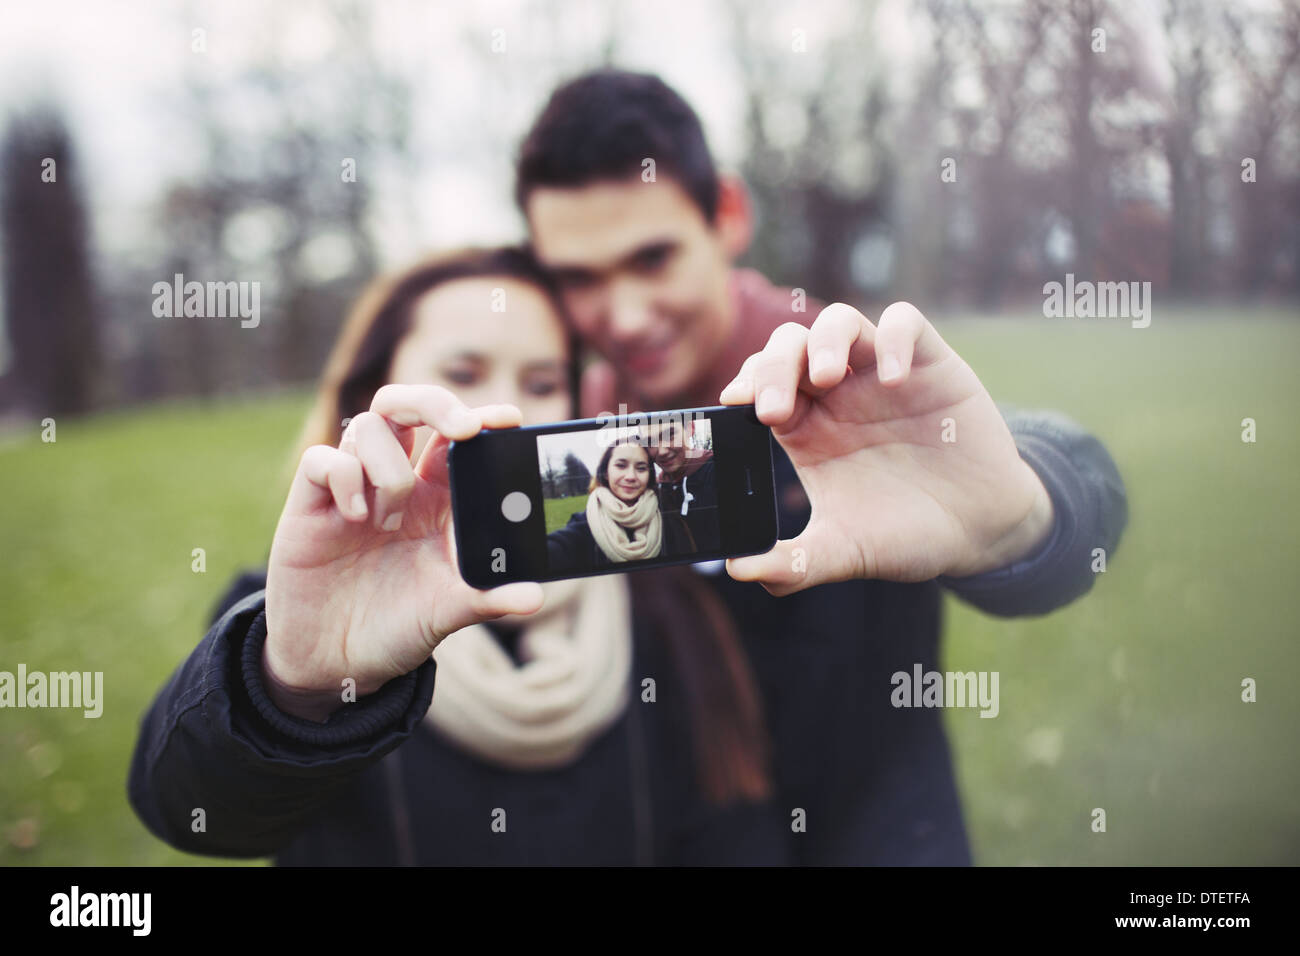 Cute young couple taking a self-portrait with a cell phone at the park. Mixed race teenage man and woman outdoors. - Stock Image